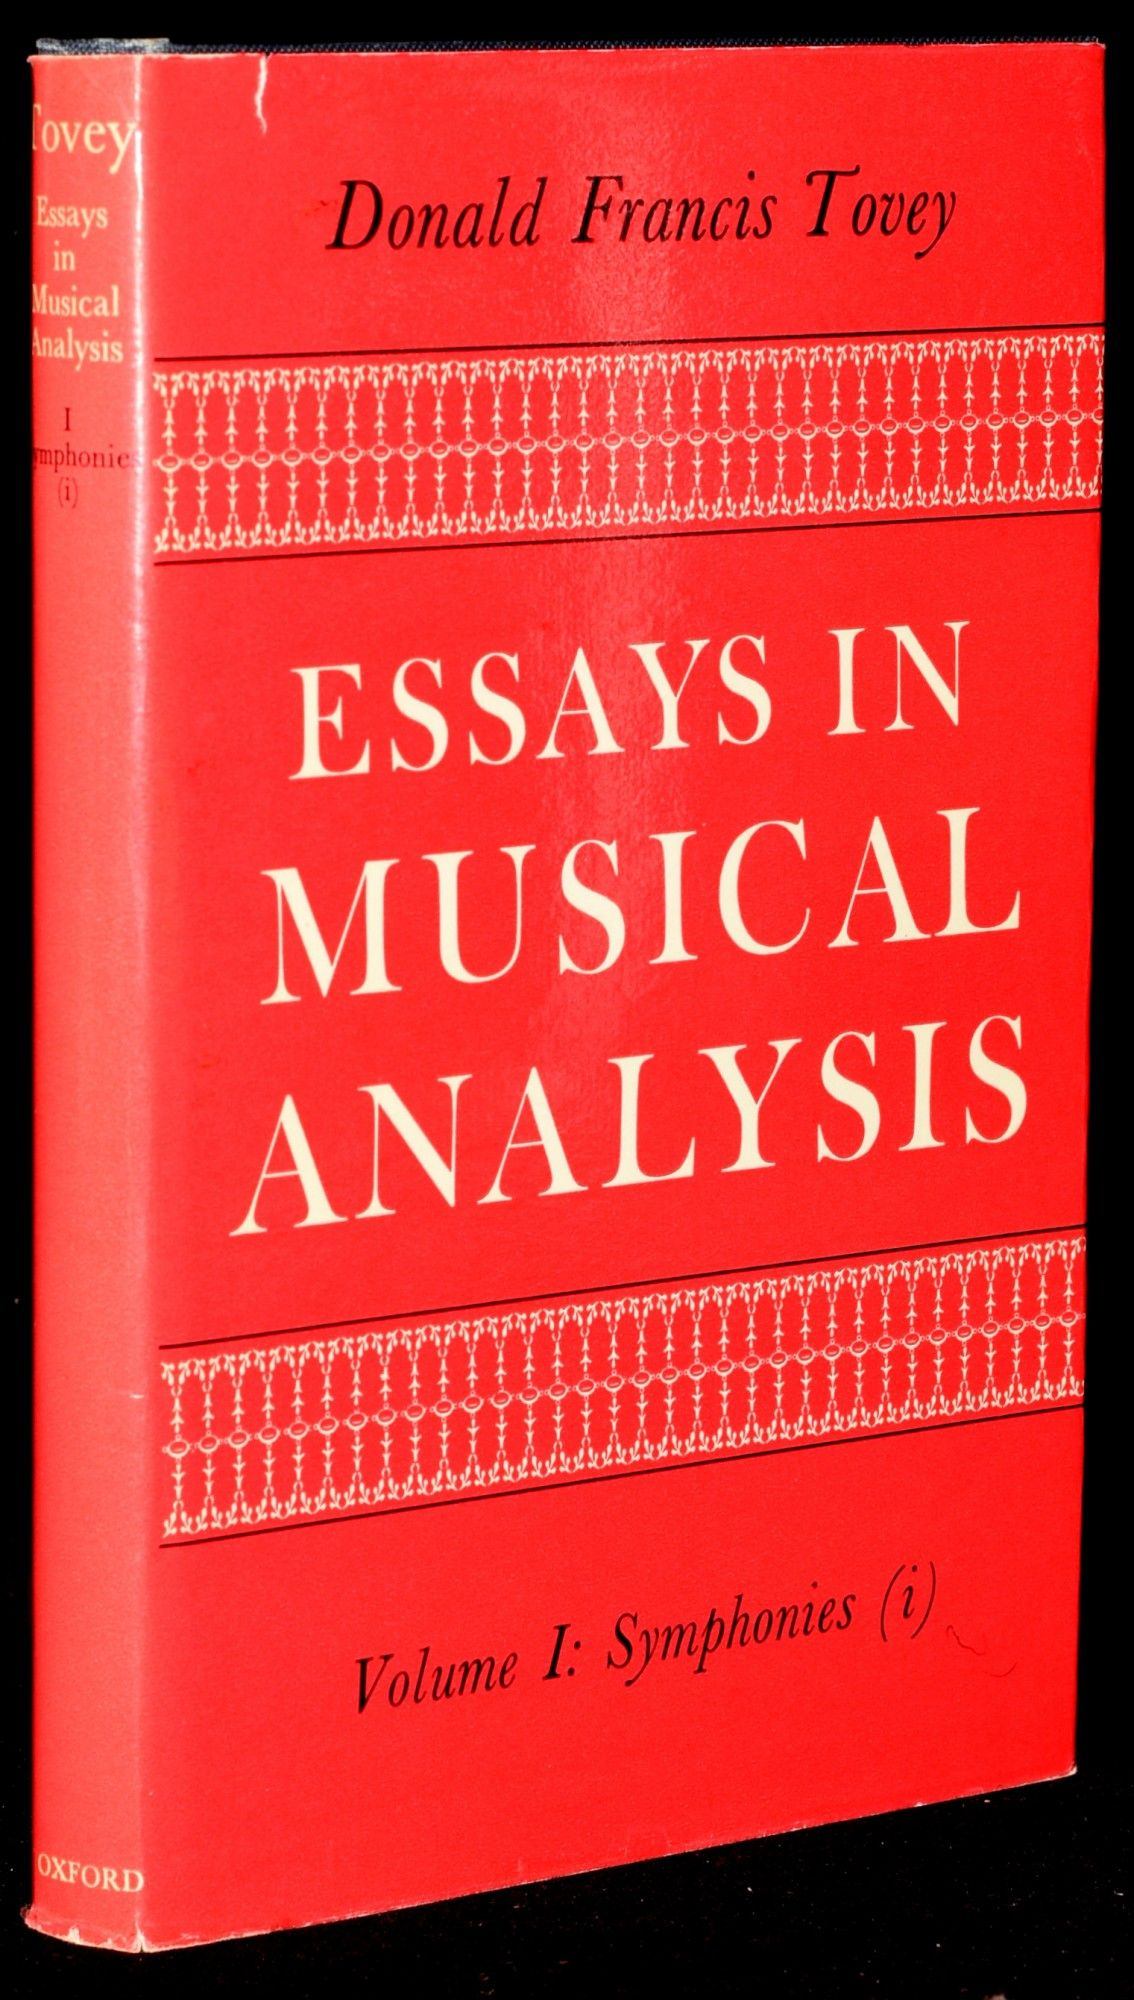 essays on musical analysis tovey Read concertos and choral works by more than fifty selections include choral works with in-depth essays donald francis tovey's essays in musical analysis.